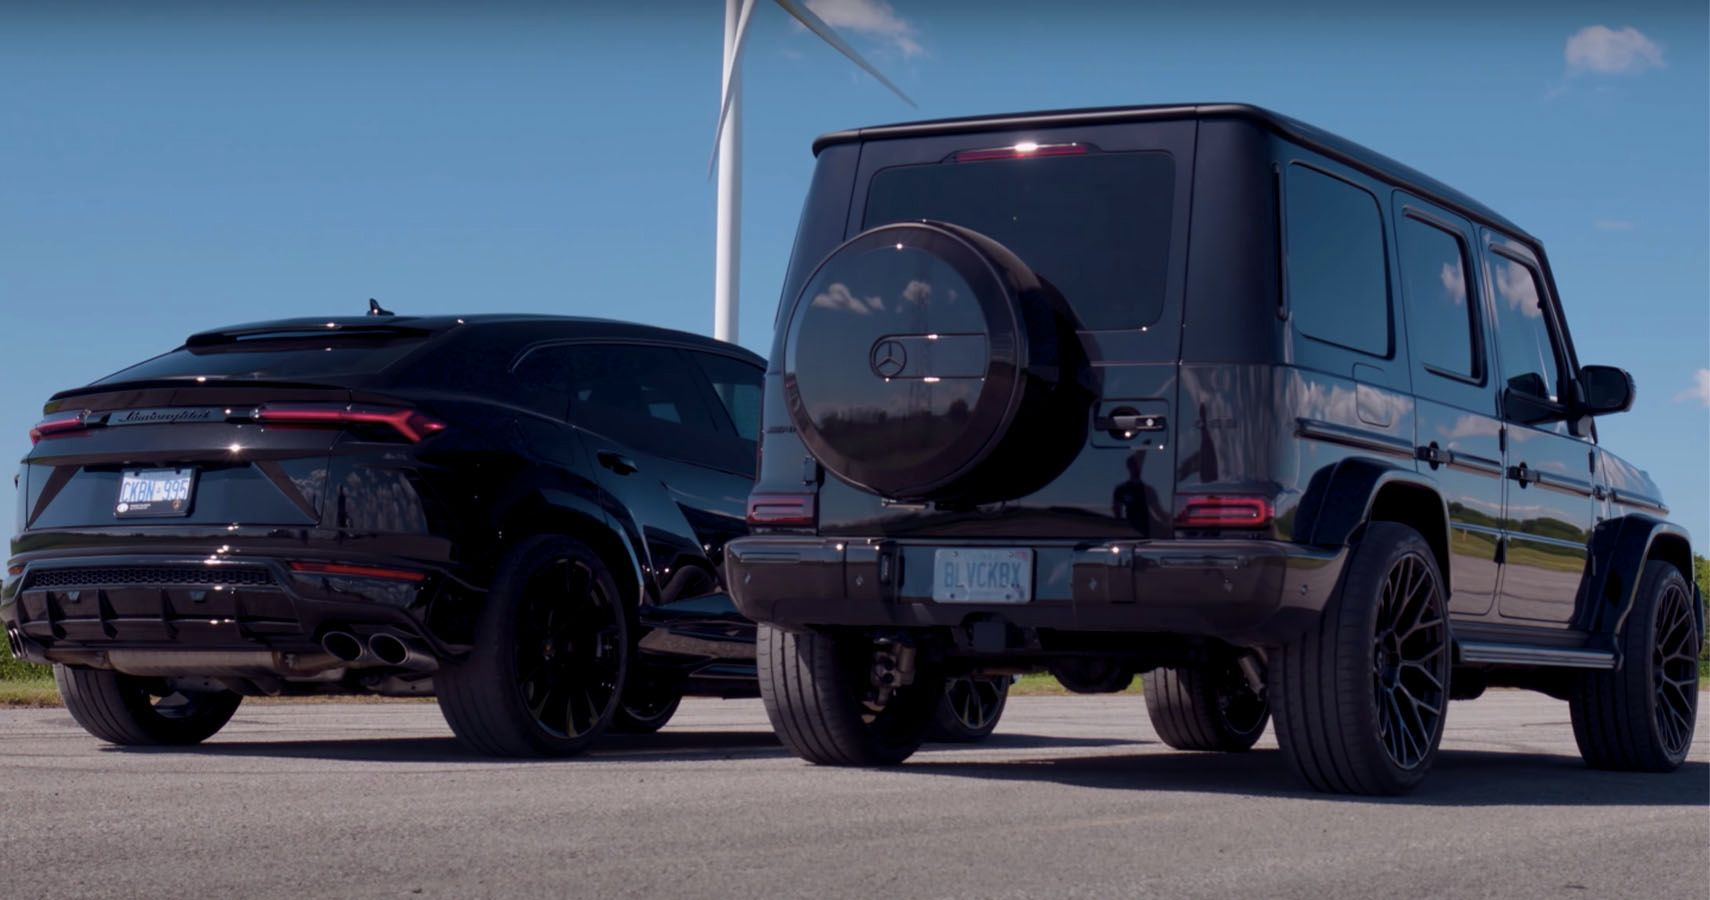 Watch A Lambo Urus Race A Tuned Mercedes-AMG G63